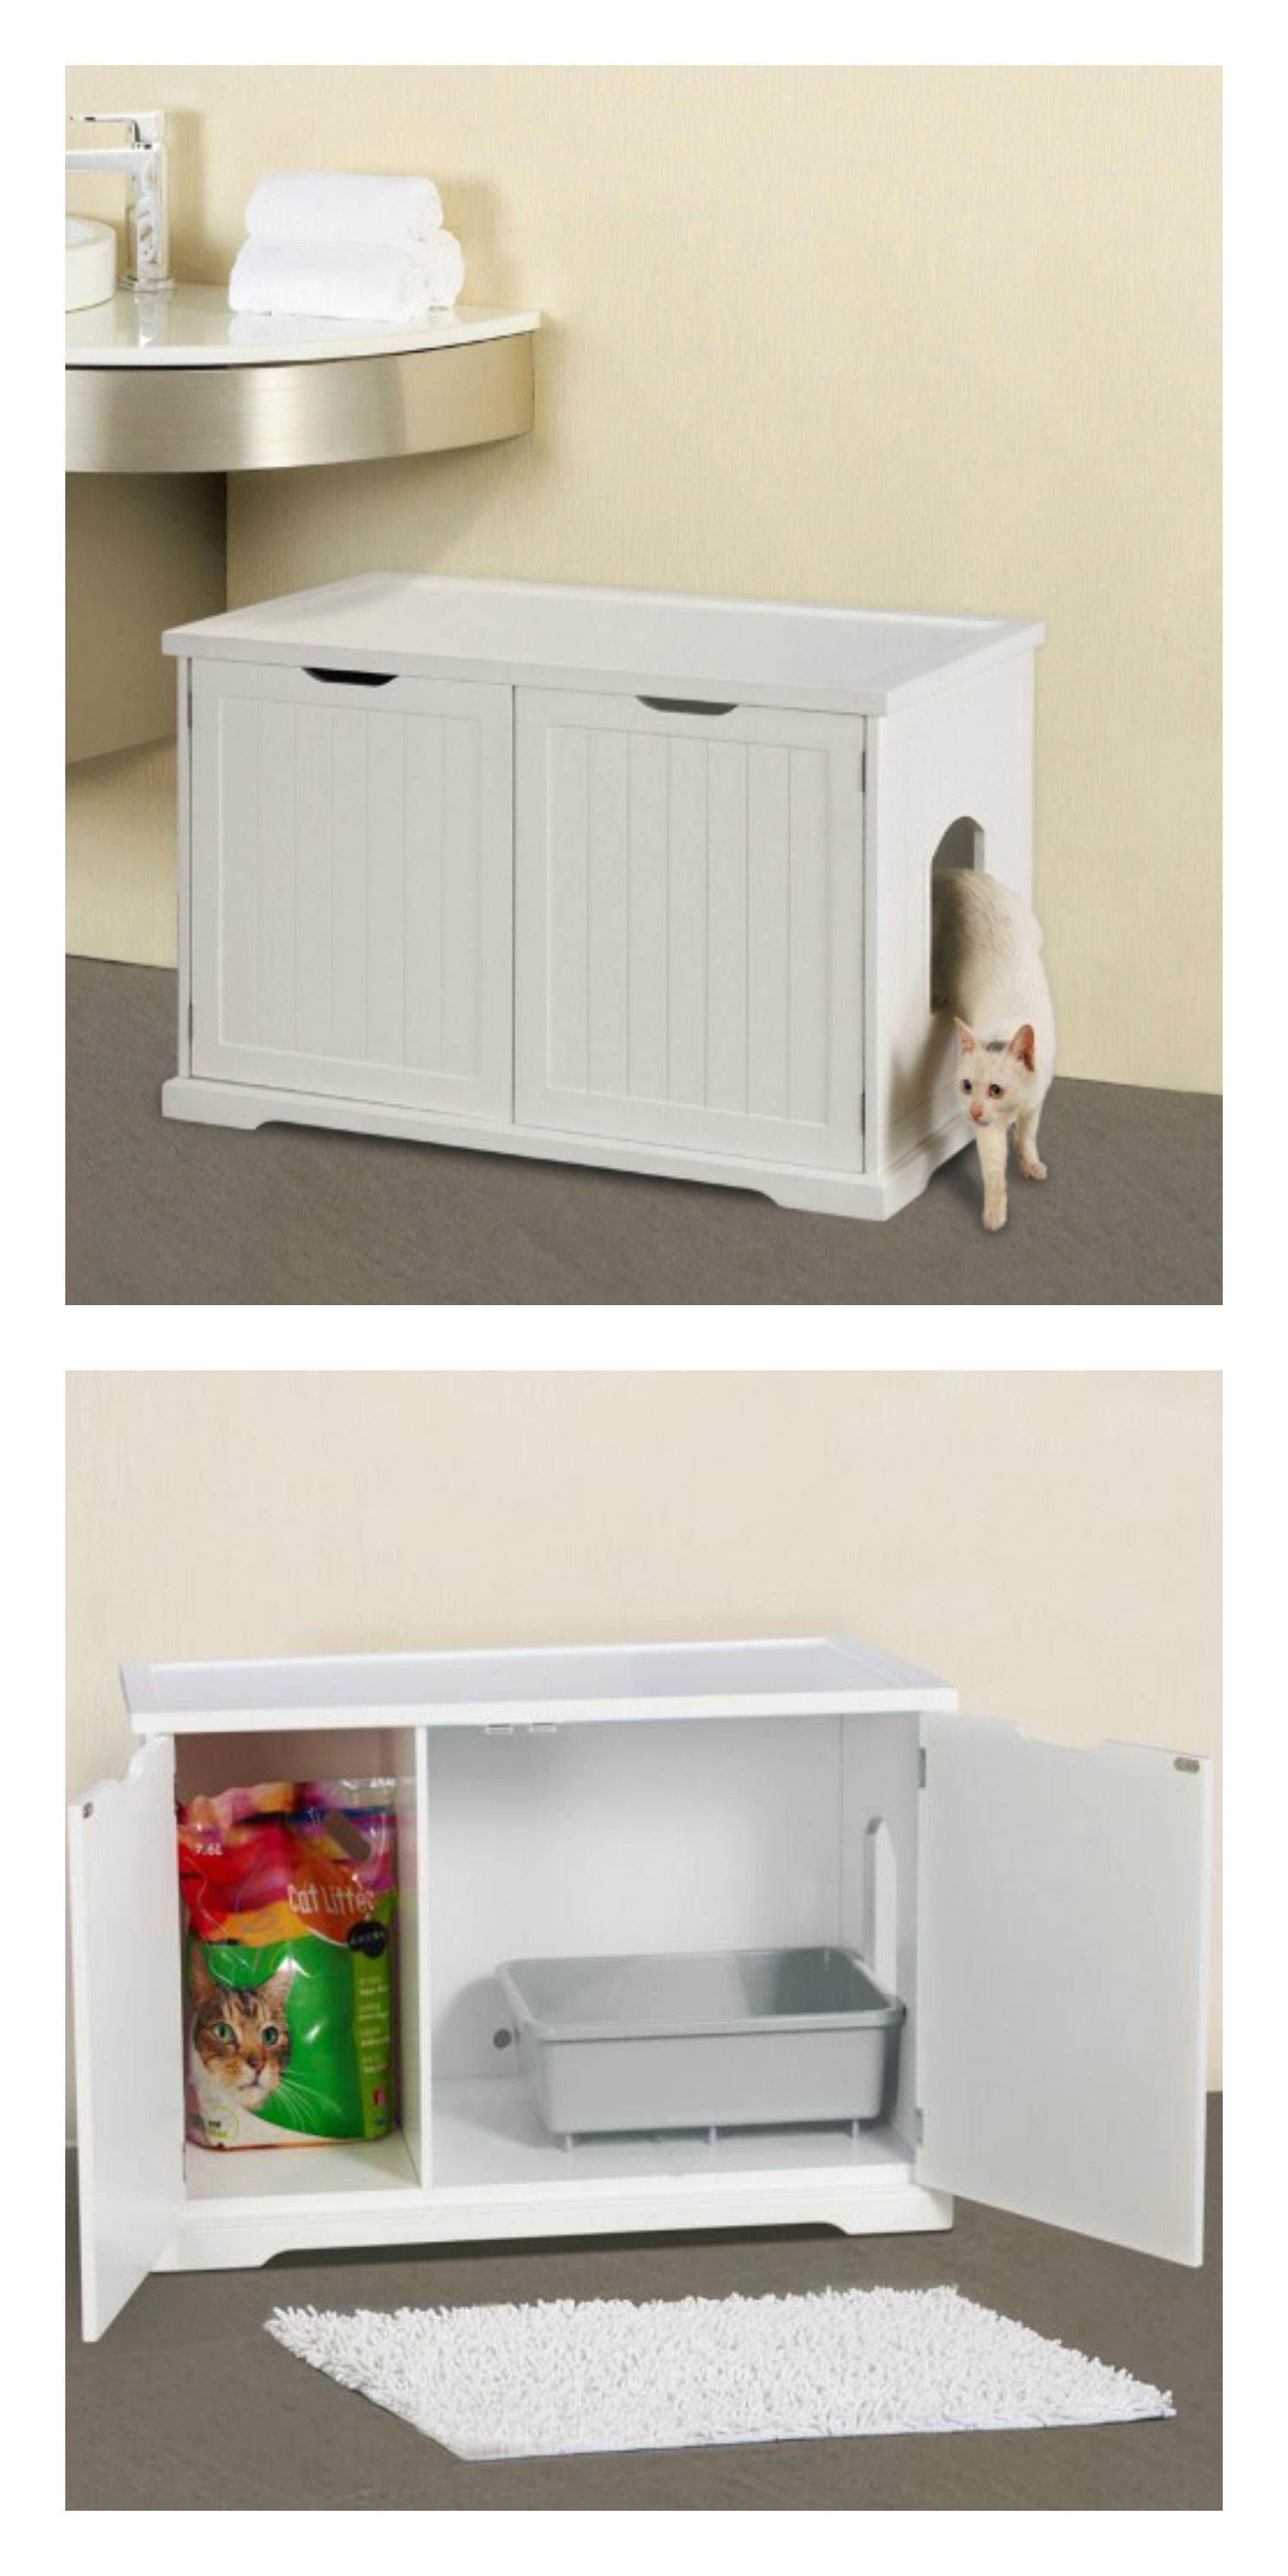 Cat Washroom Bench a stylish way to hide the litter box and store